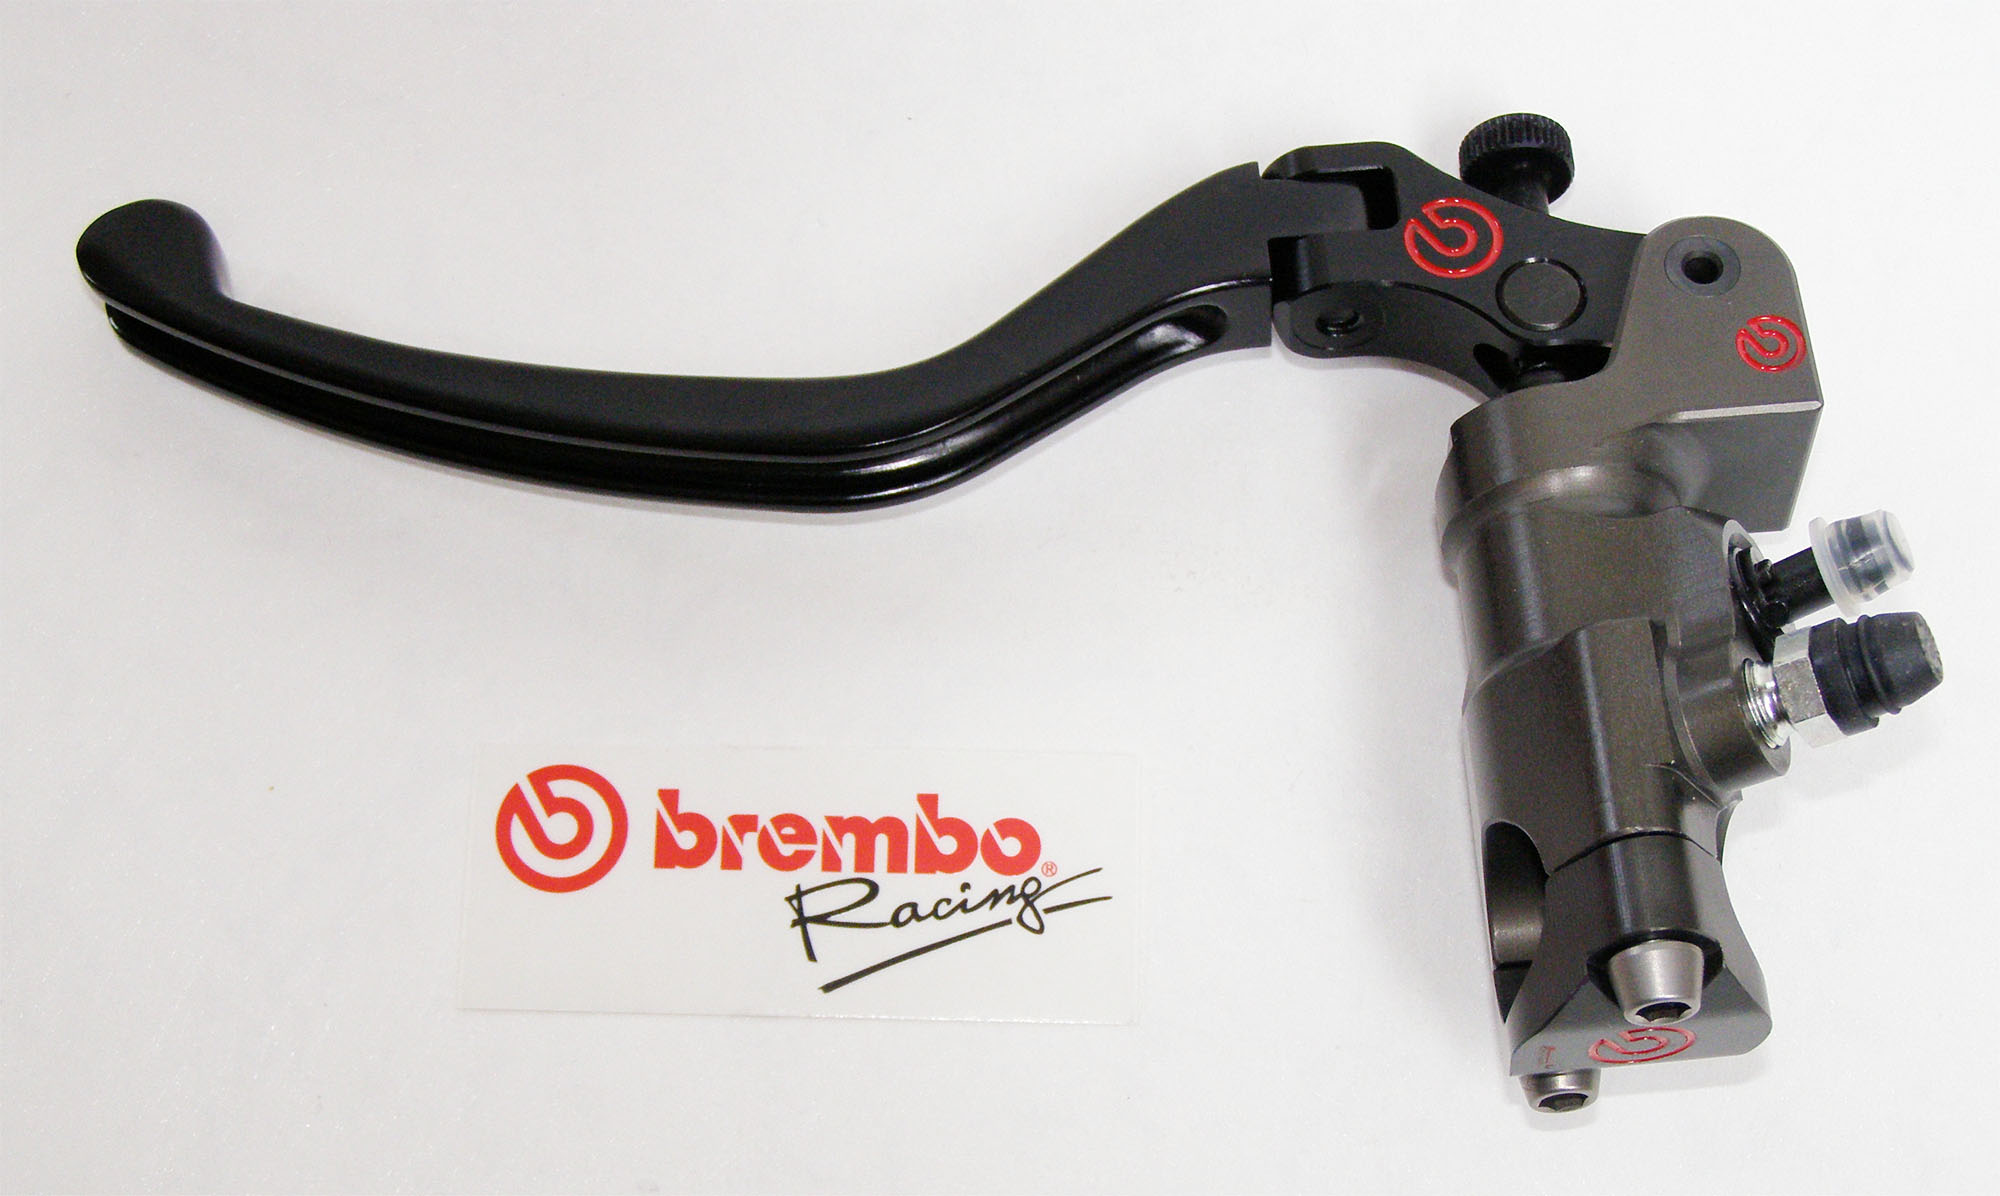 Brembo Radial Clutch Master Cylinder PR16x19, CNC, lever folding